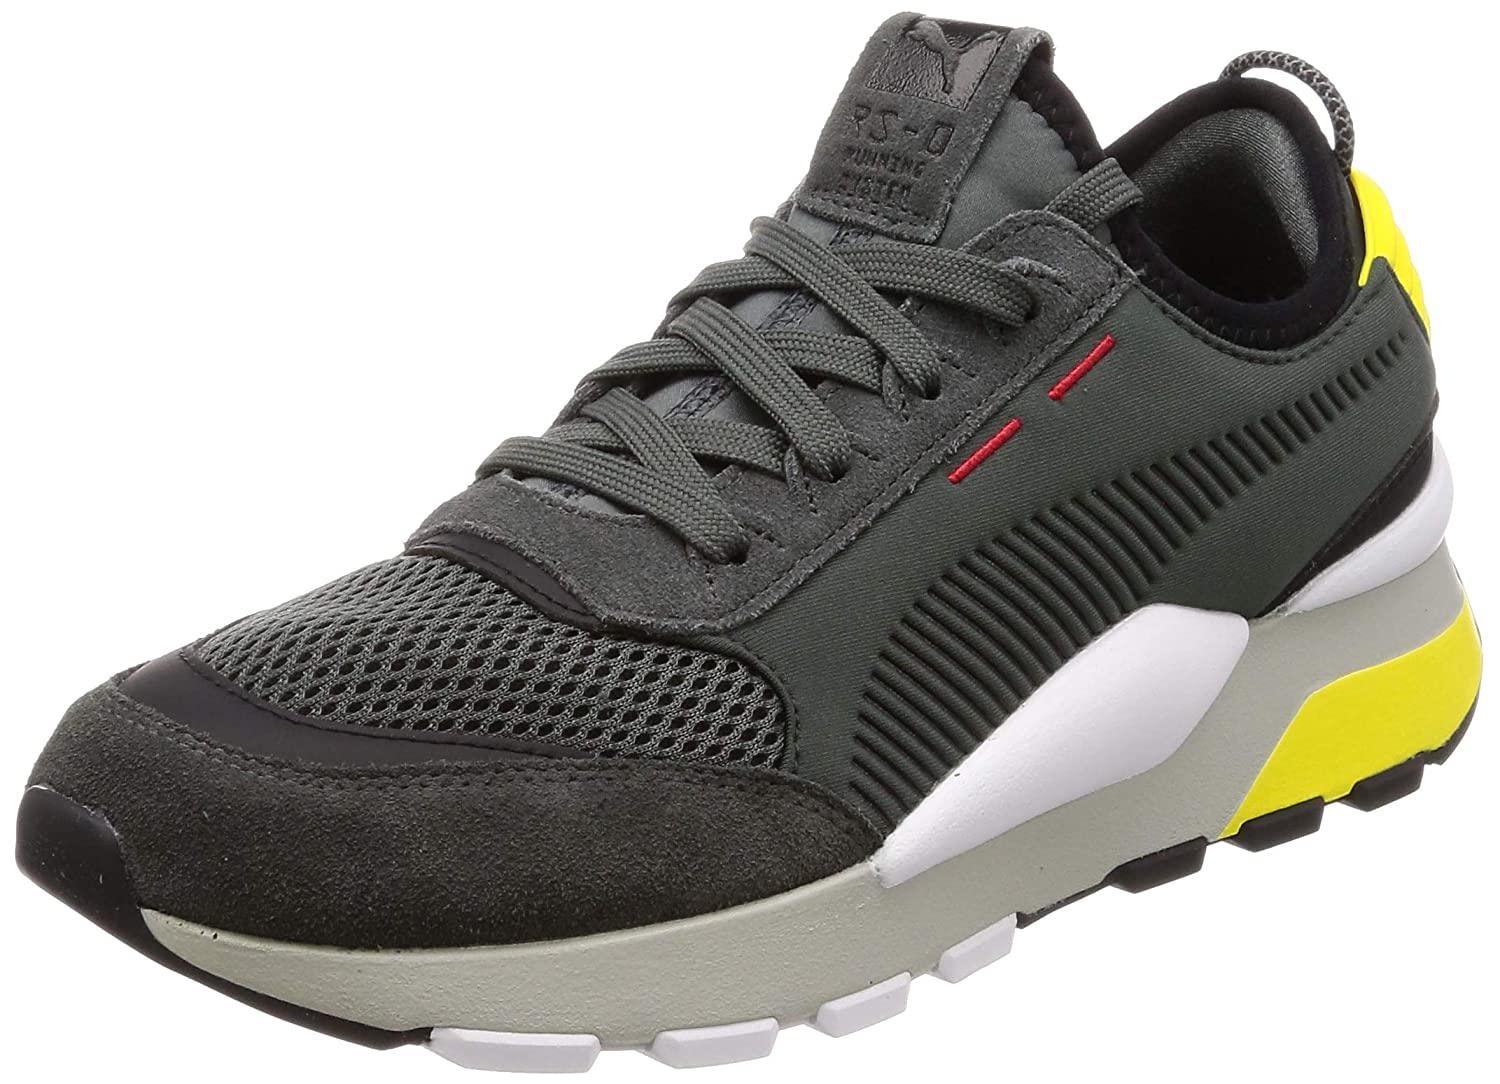 Puma Unisex Adults  Rs-0 Winter Inj Toys Low-Top Sneakers  Amazon.co.uk   Shoes   Bags e94d172e4